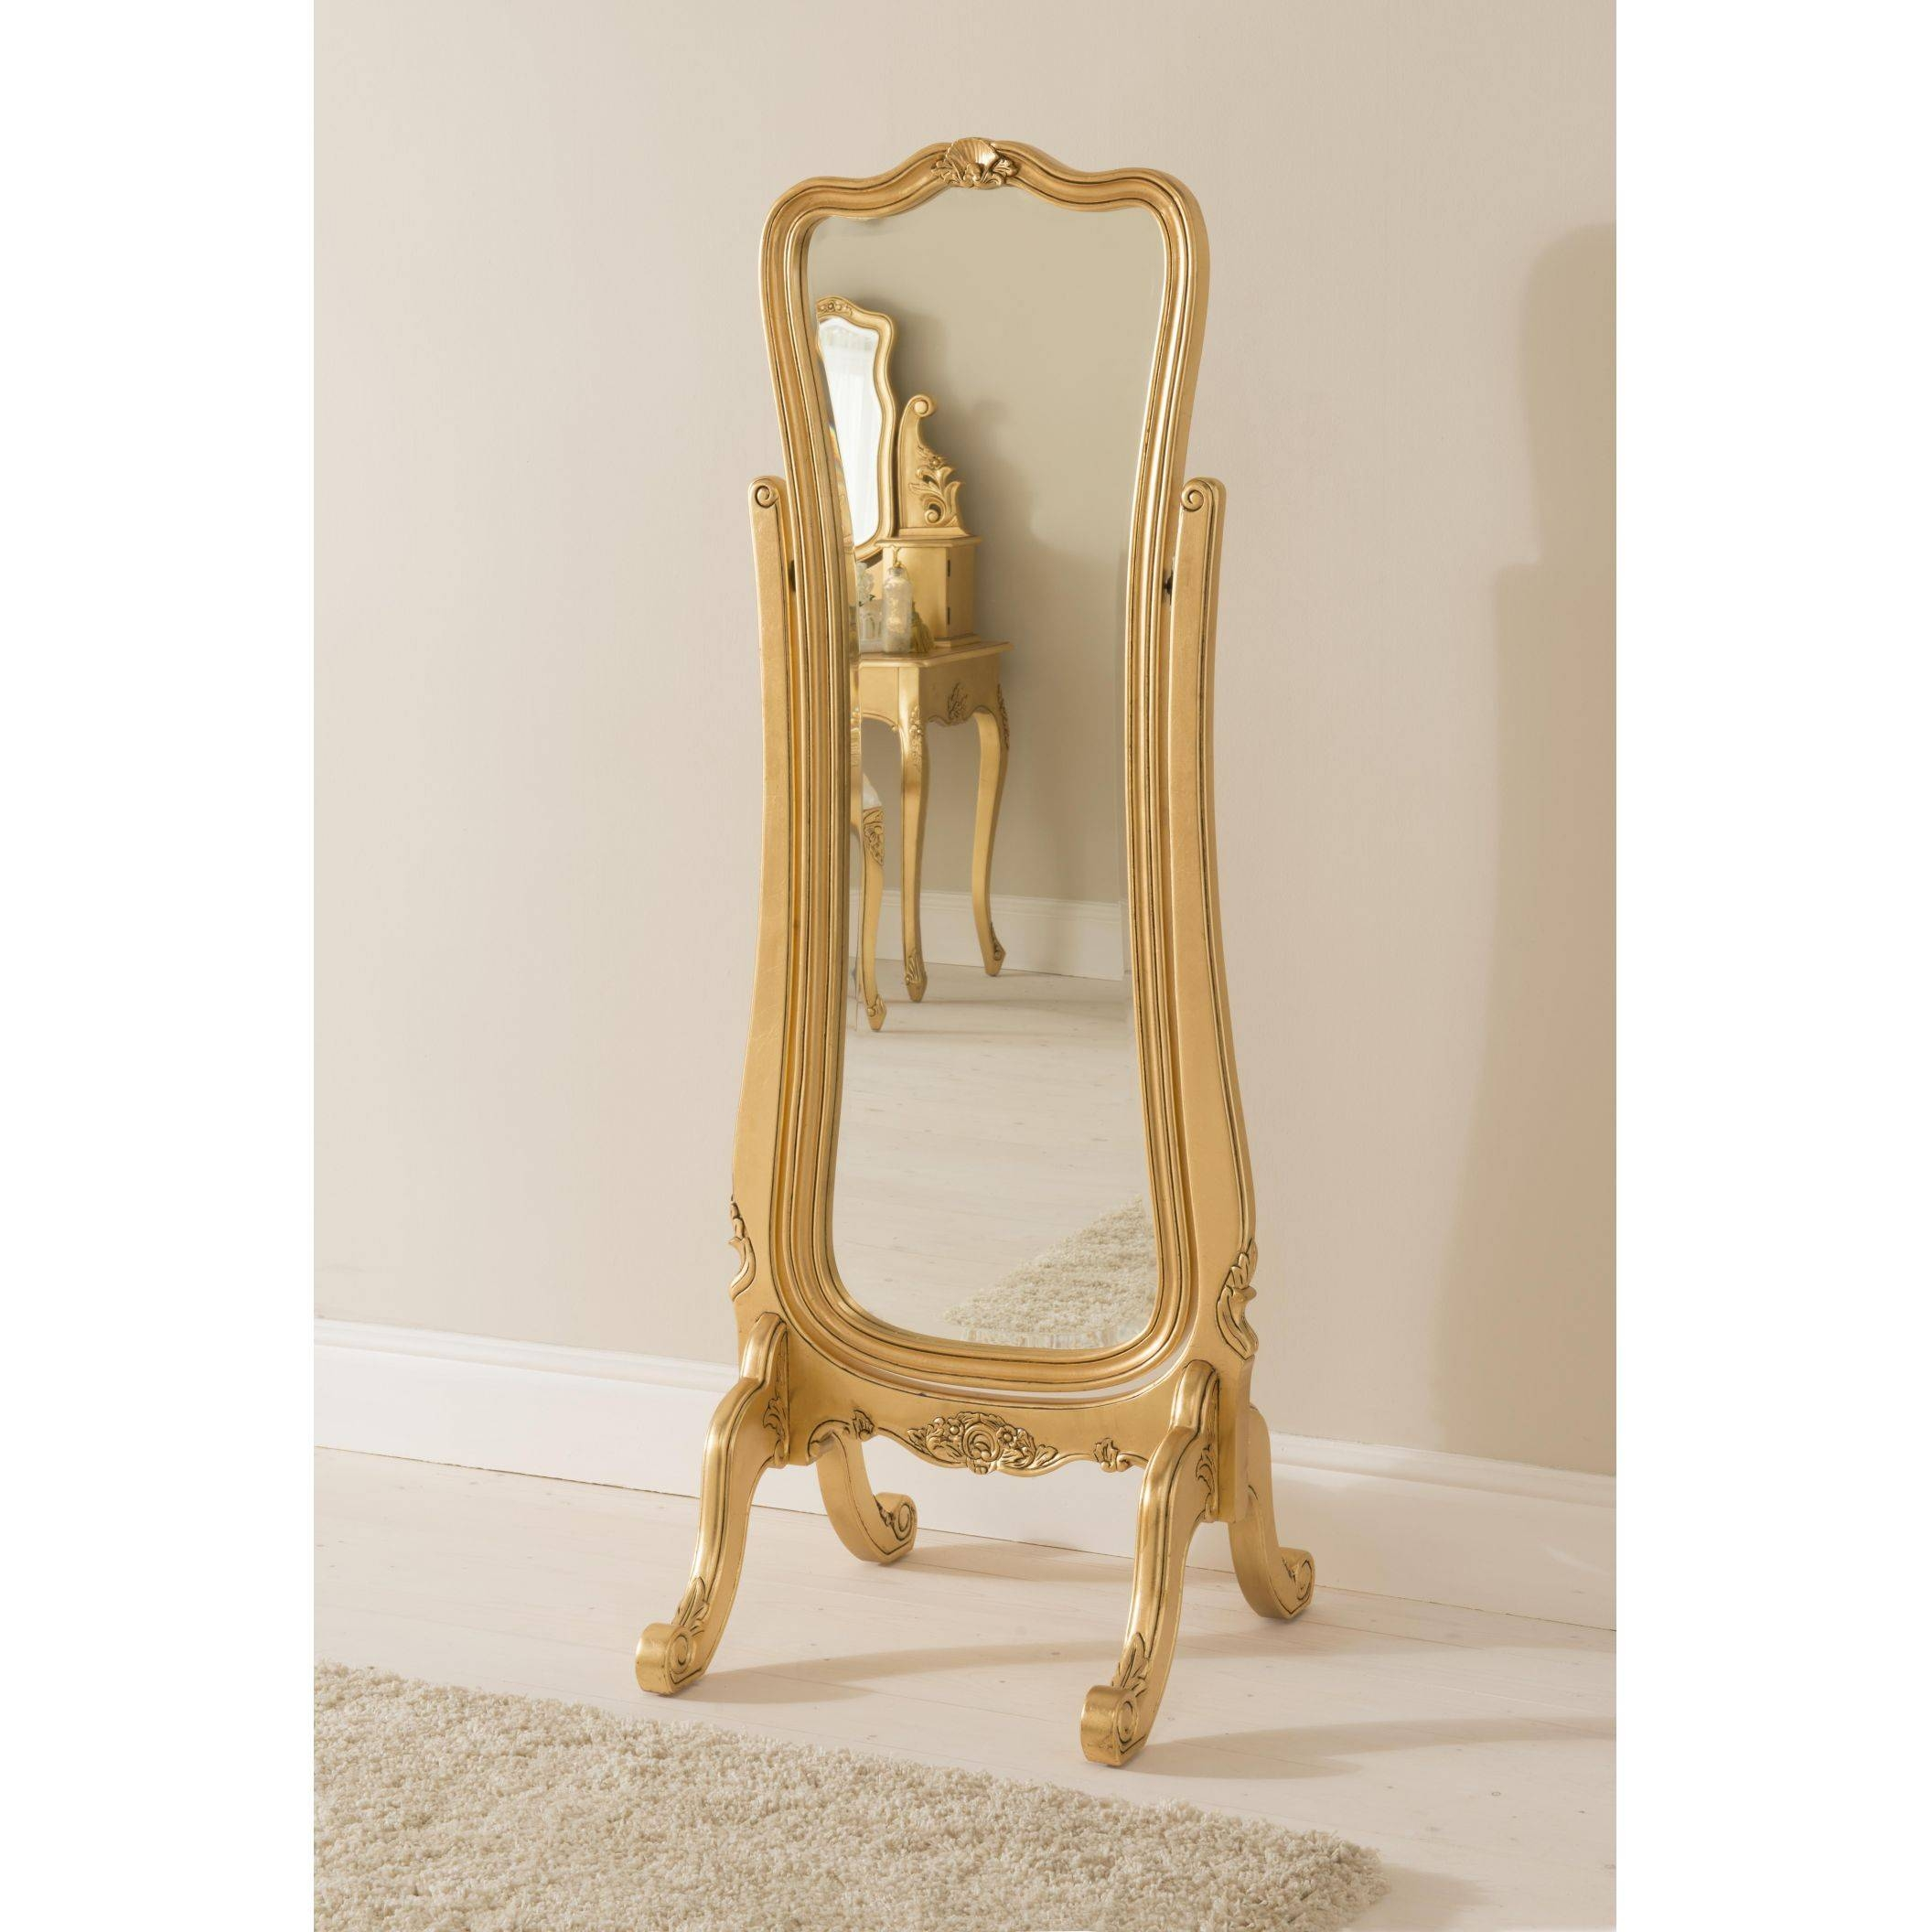 Decorating: Antique Wooden Cheval Mirror With Wooden Floor And for Cheval Freestanding Mirrors (Image 11 of 15)